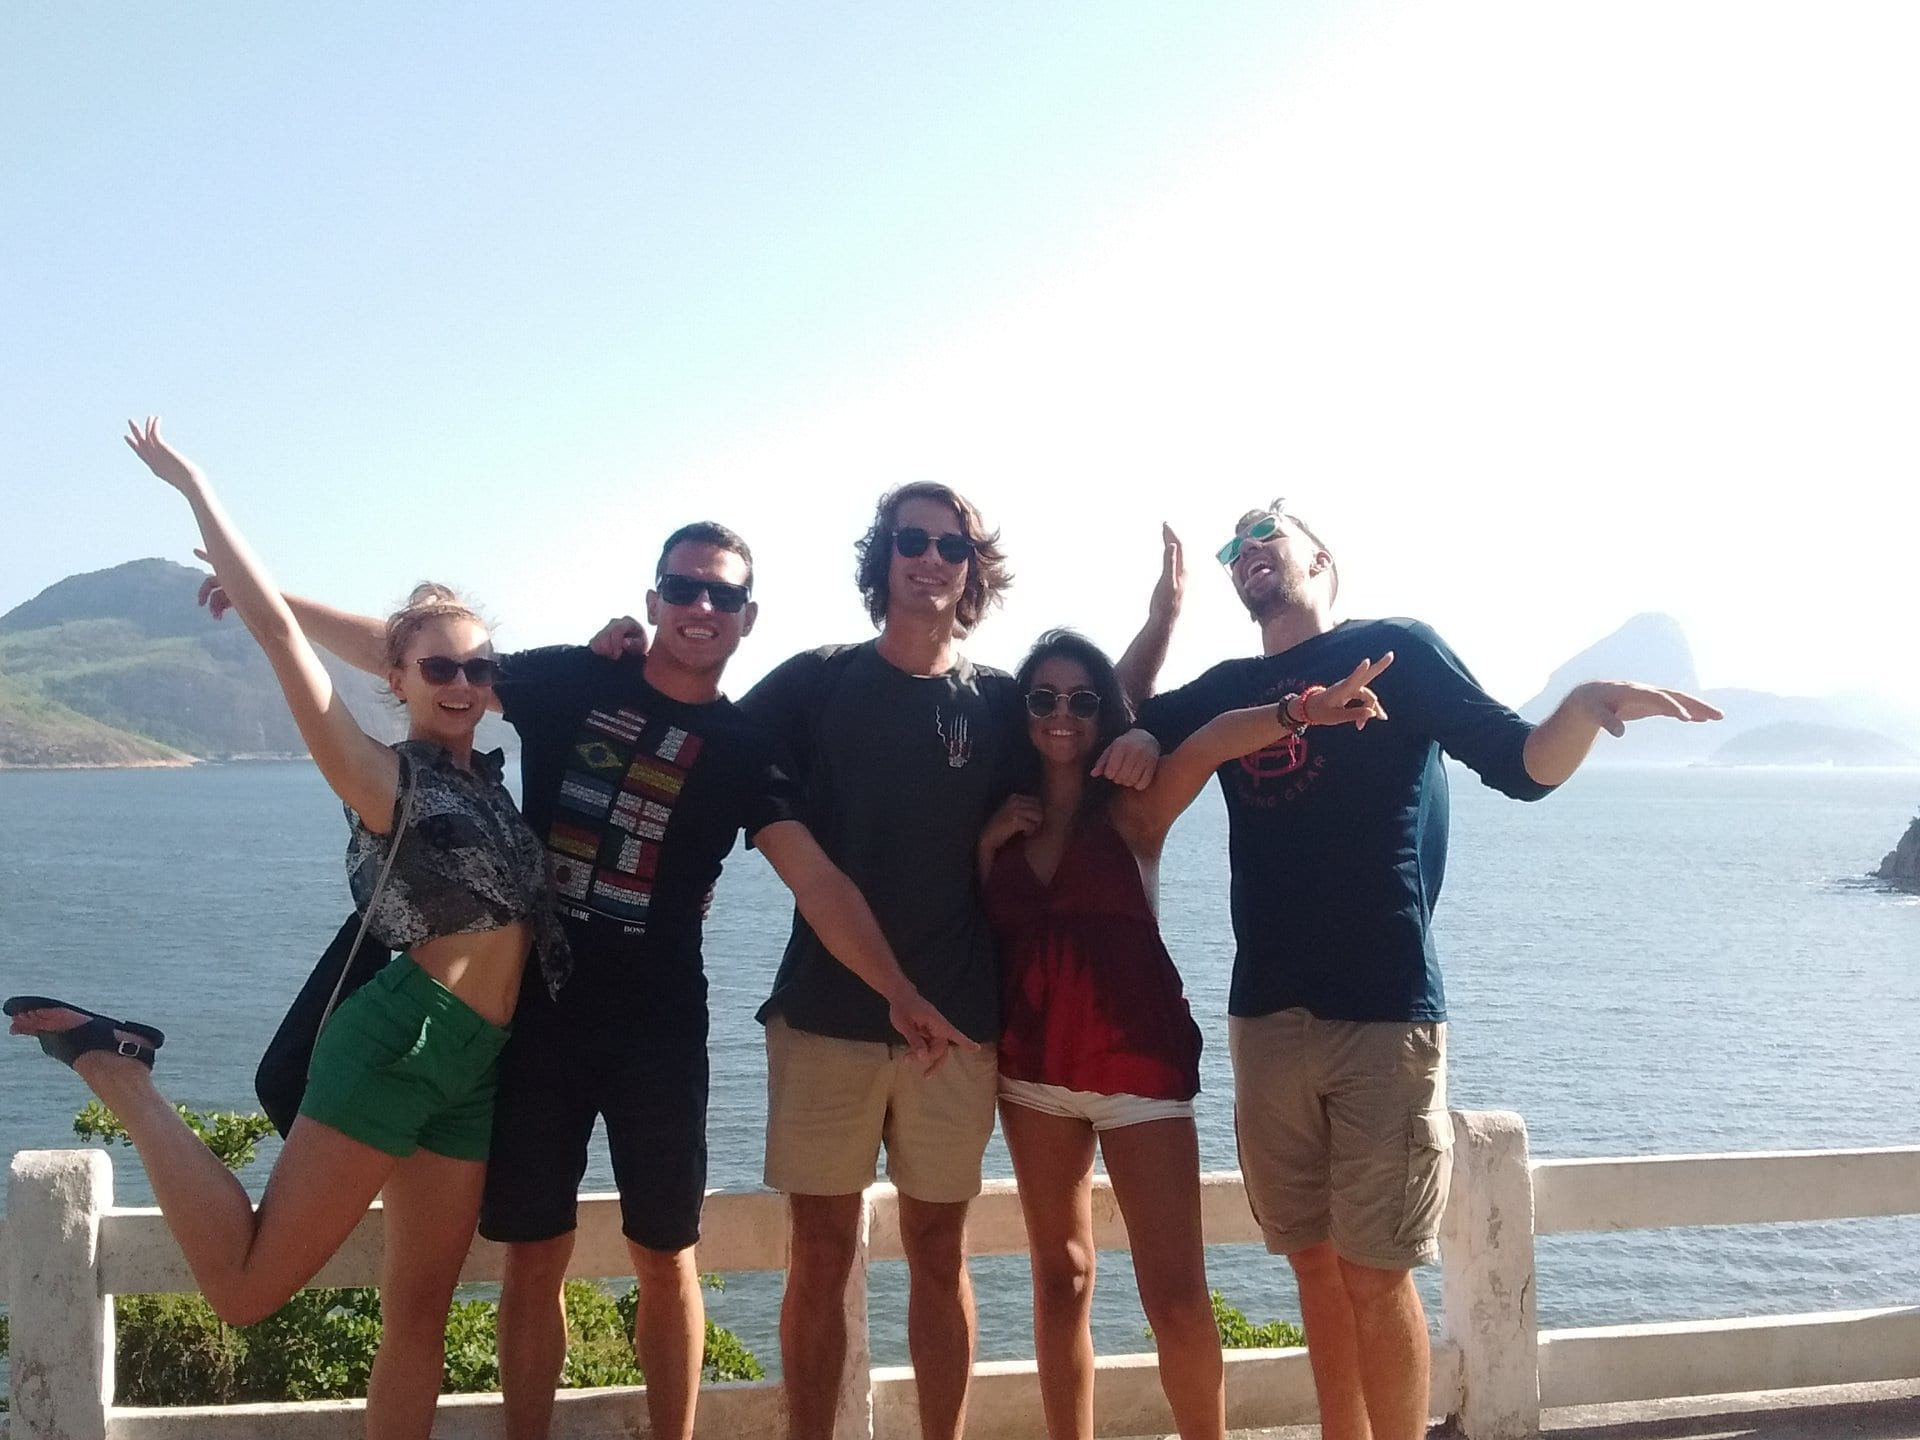 RioLIVE! - Students enjoying the day at Niterói. Feeling good. Happy thoughts. just chilling at the mac